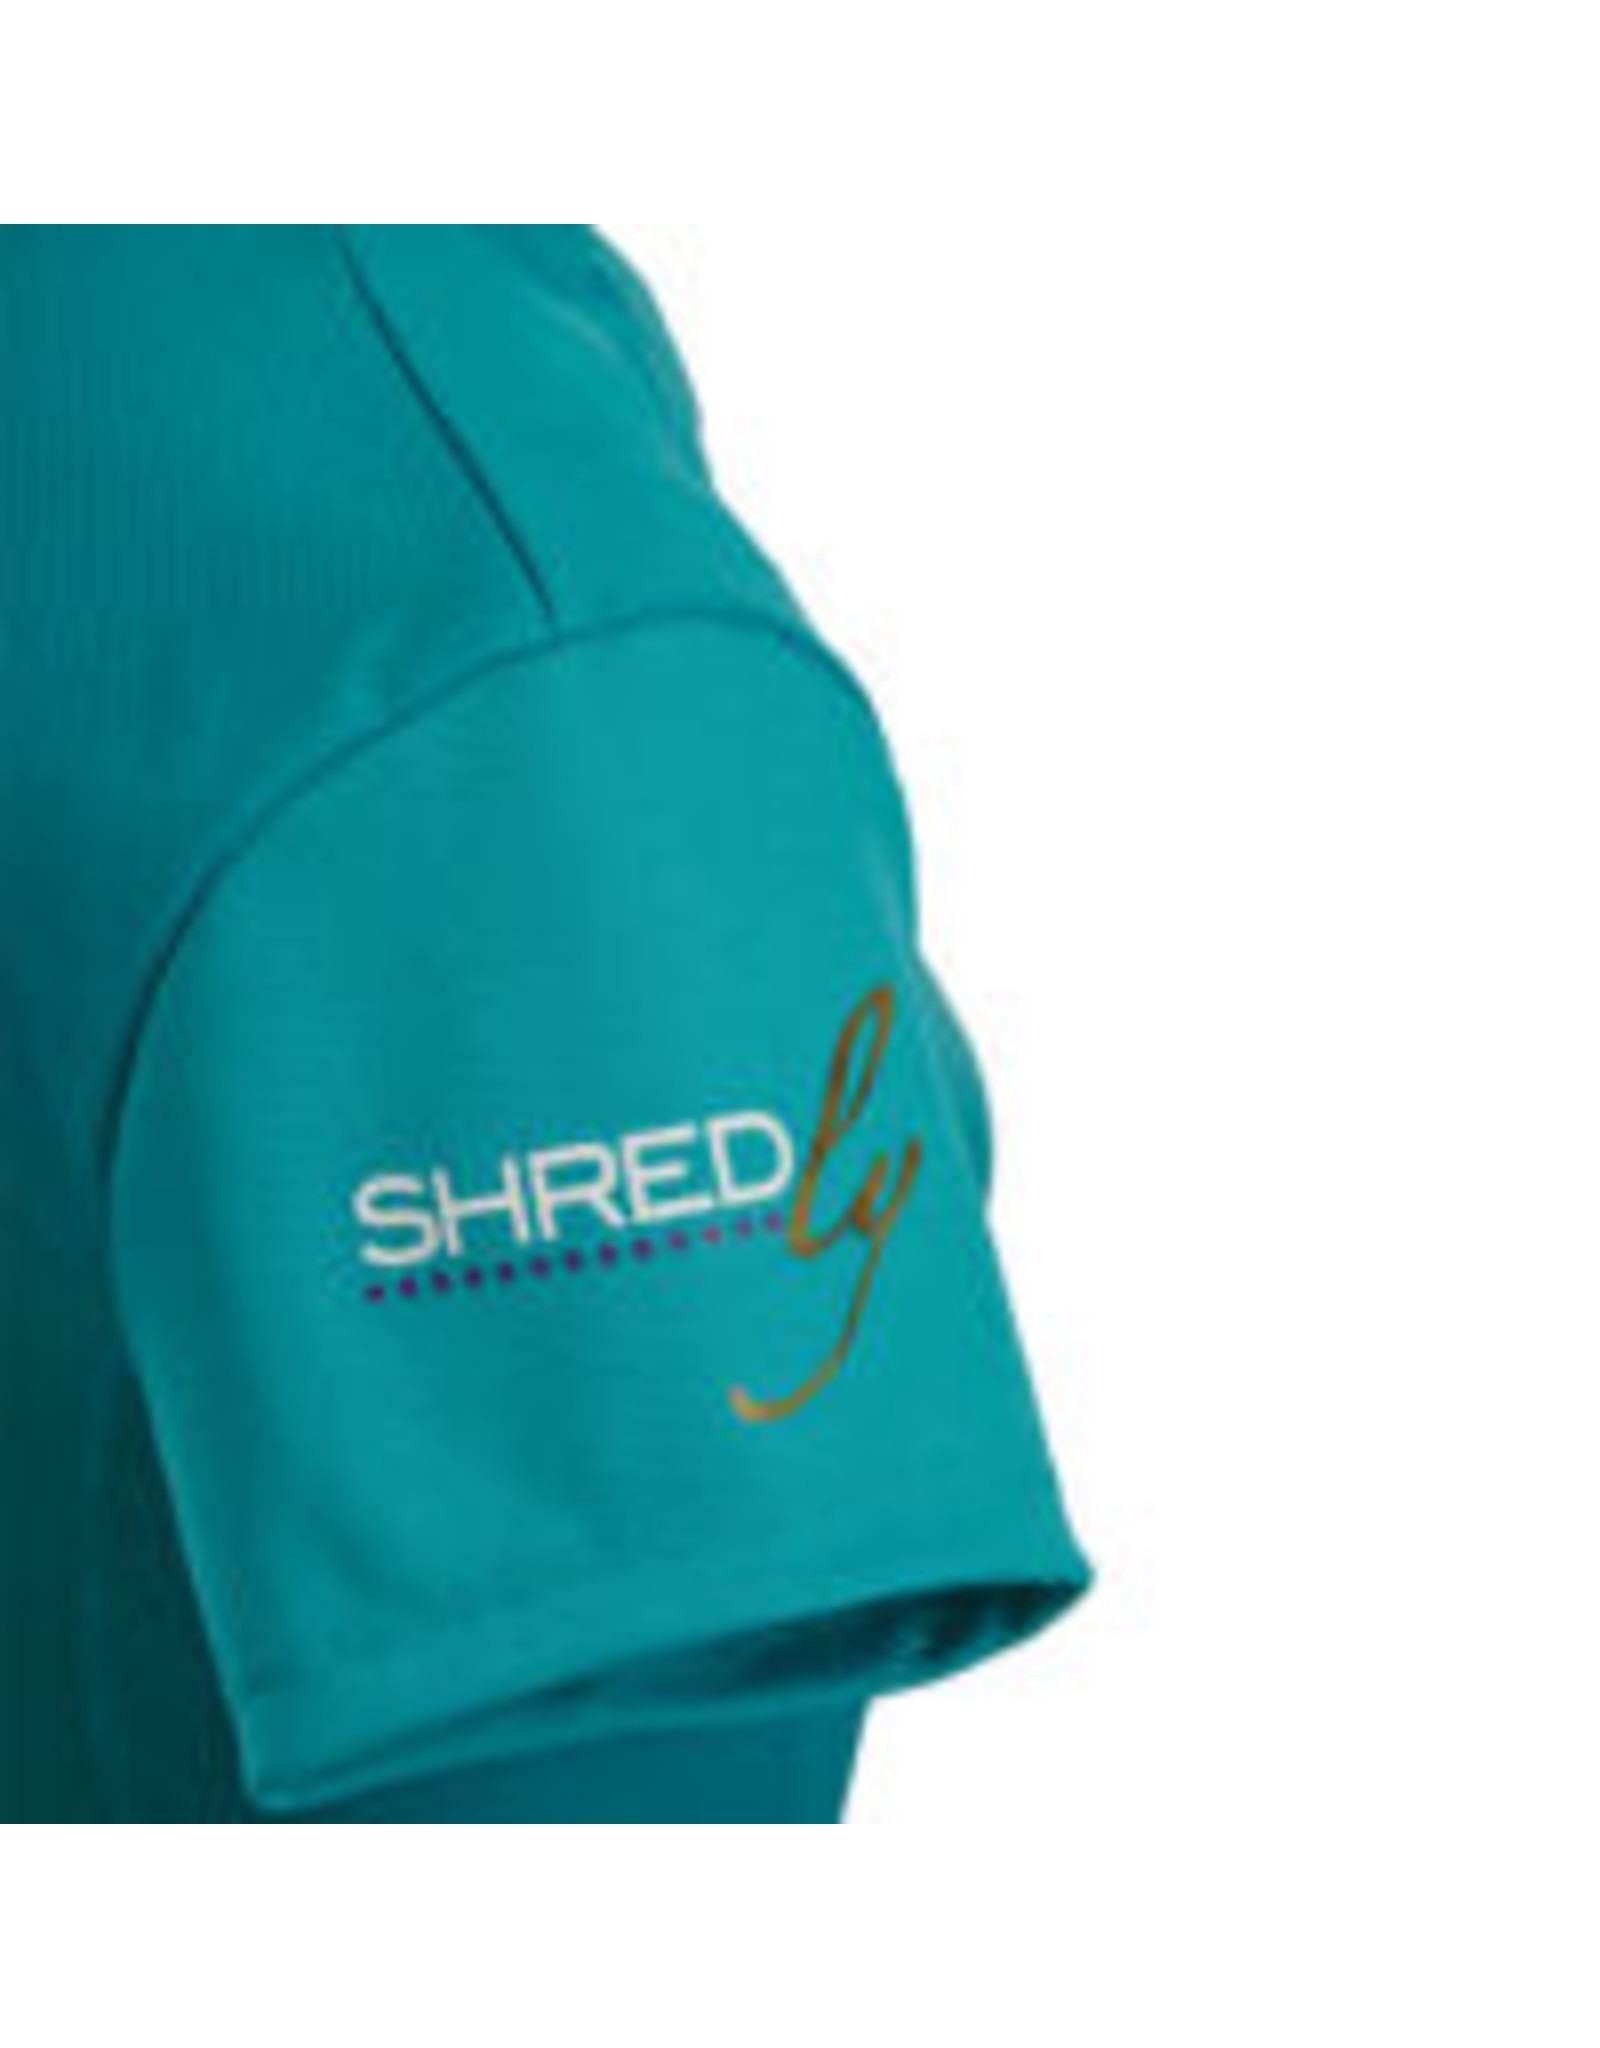 Shredly Shredly - the CARGO JERSEY - Teal - Size XS